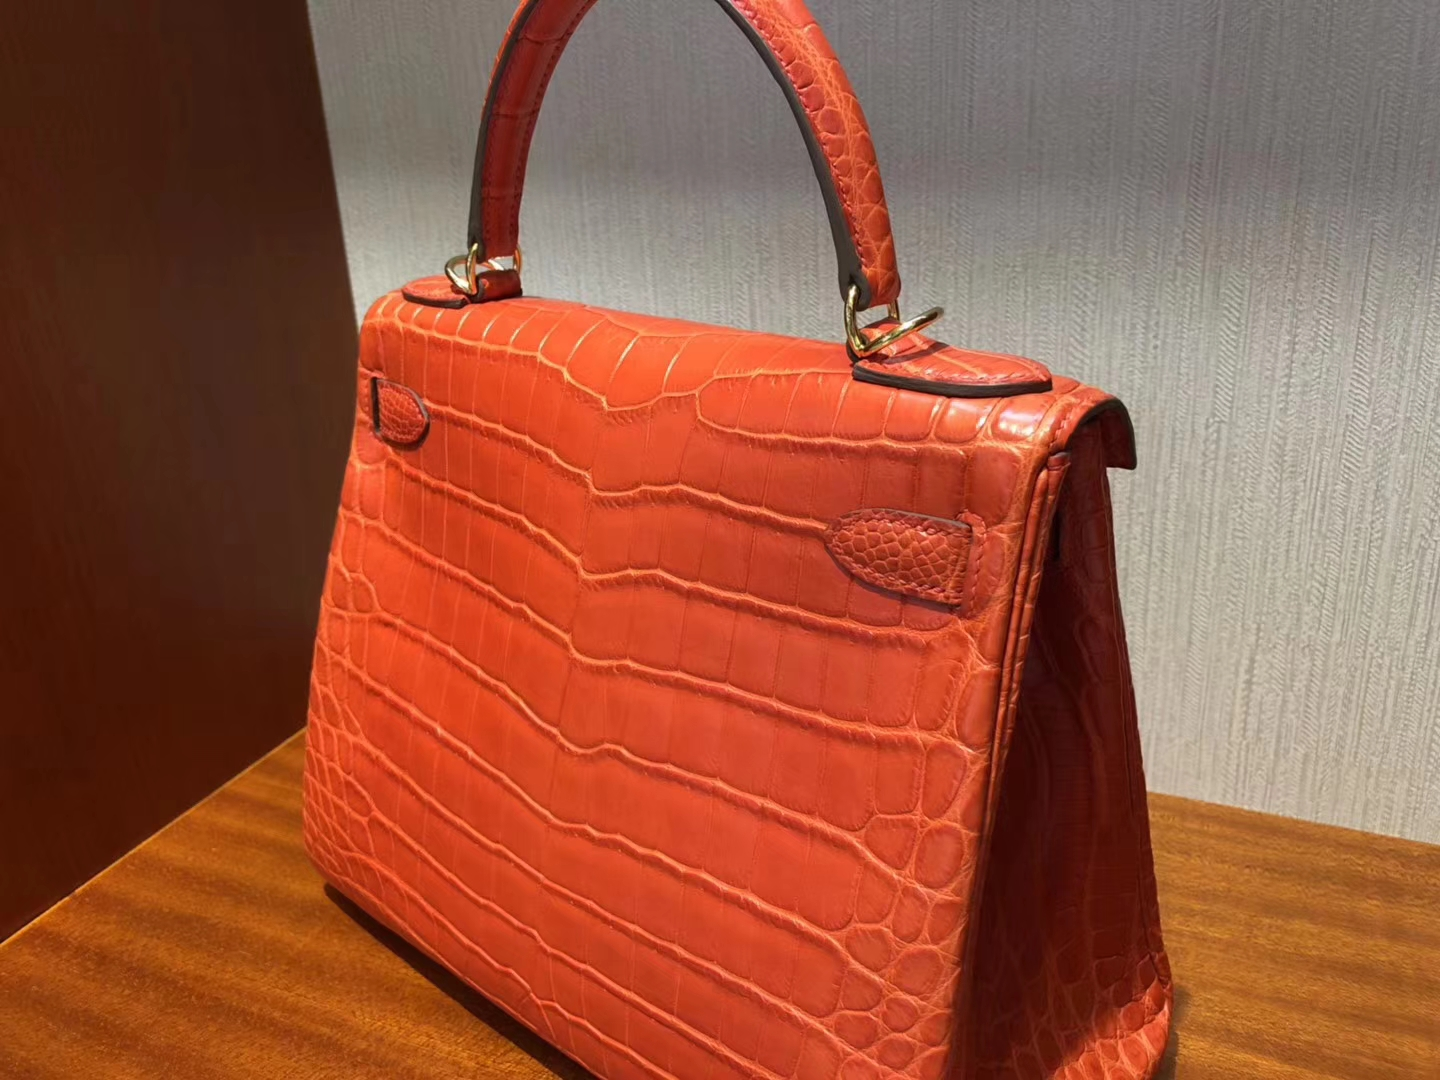 New Arrival Hermes 8V Coppy Orange Crocodile Matt Kelly28CM Bag Gold Hardware